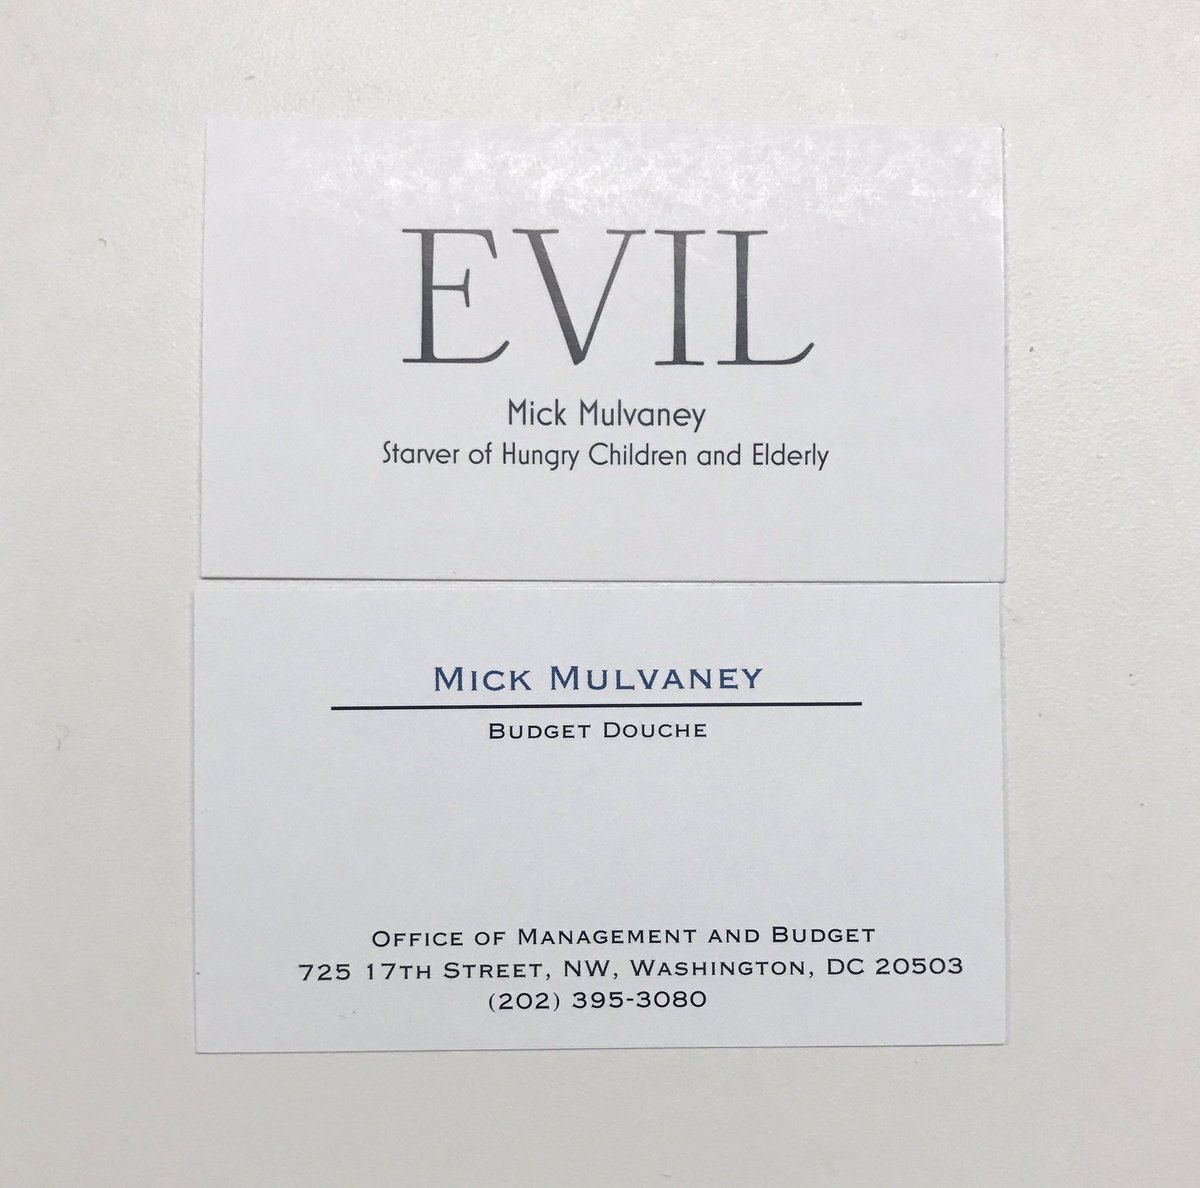 Alan rappeport on twitter what does mick mulvaney get for fan alan rappeport on twitter what does mick mulvaney get for fan mail new business cards reheart Gallery